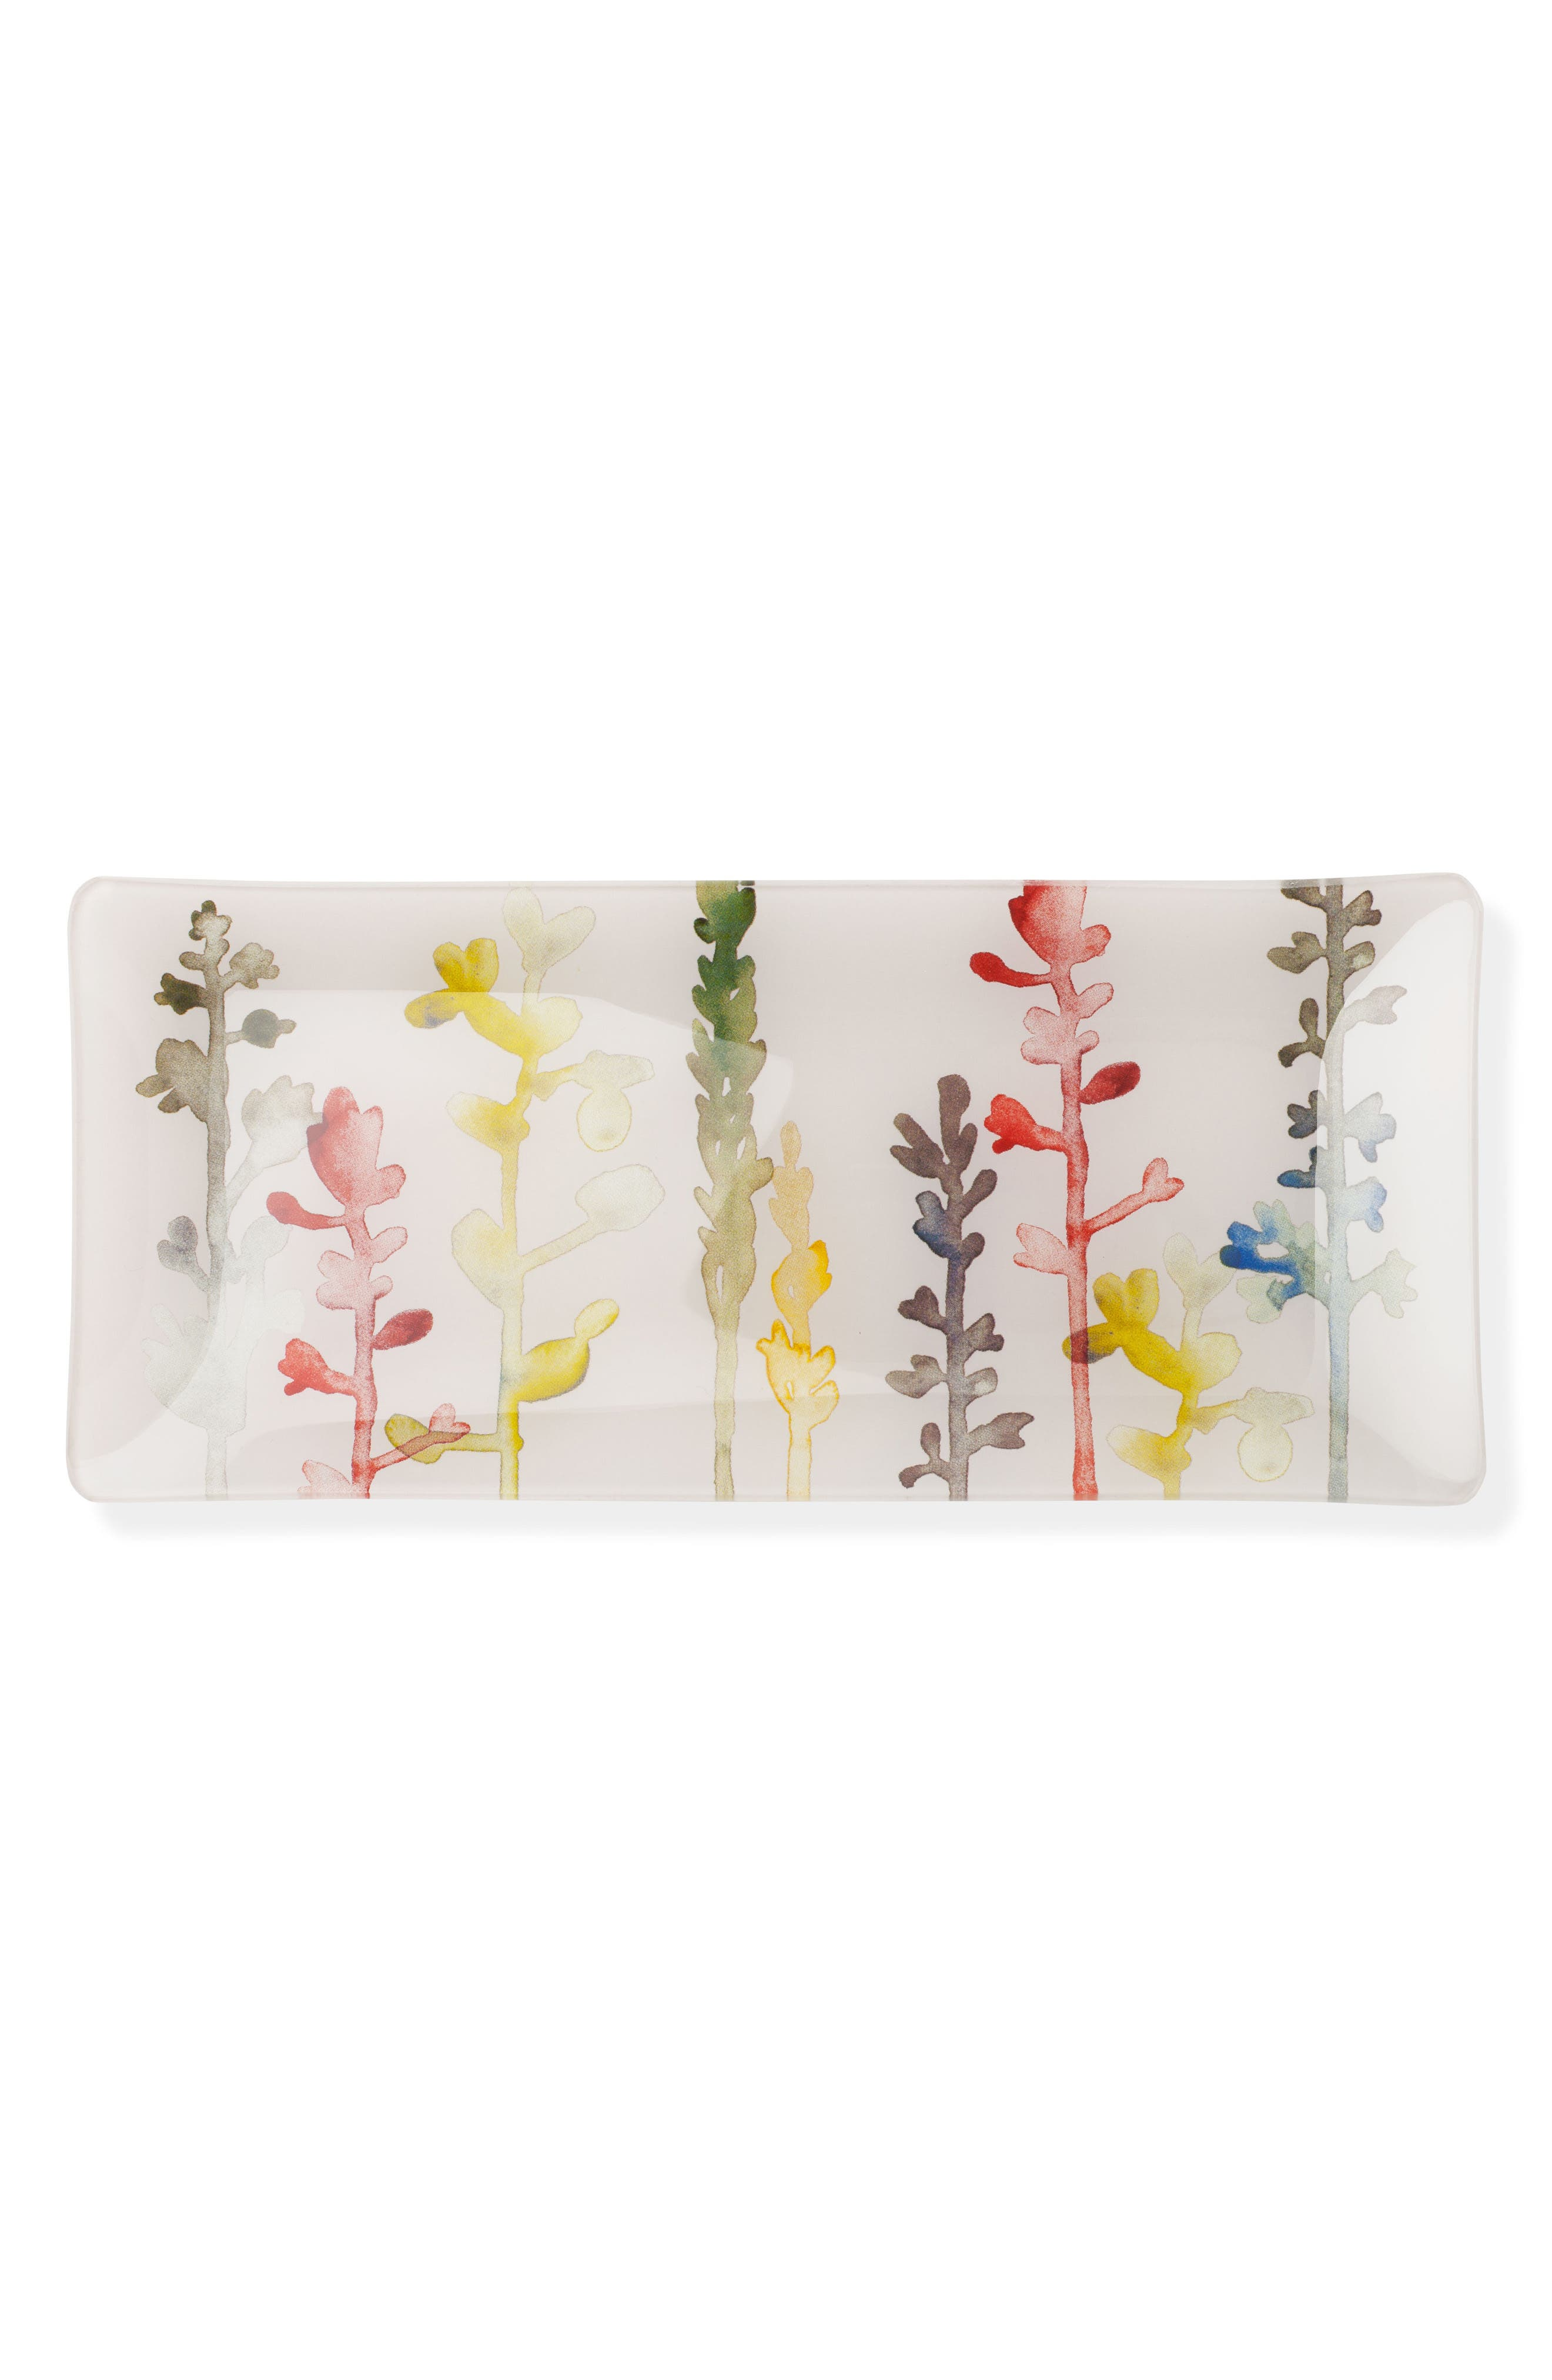 Main Image - Fringe Studio Watercolor Stems Trinket Tray